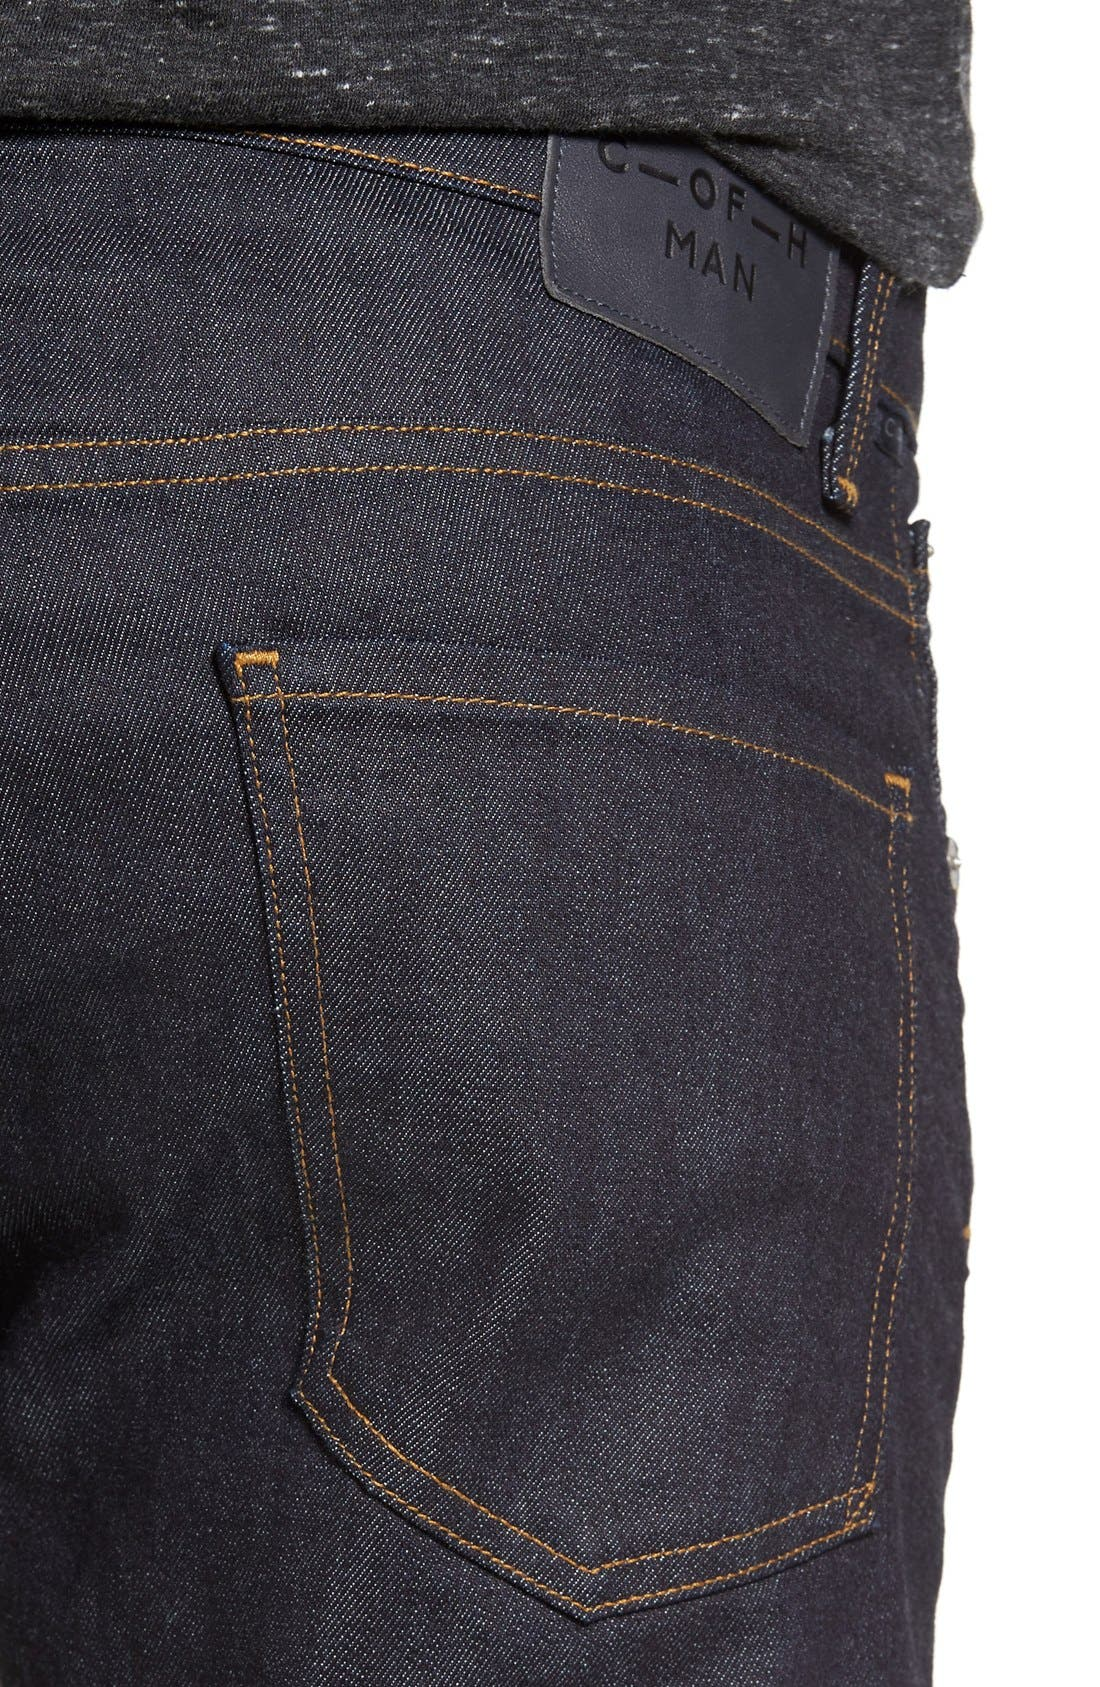 Bowery Slim Fit Jeans,                             Alternate thumbnail 9, color,                             432